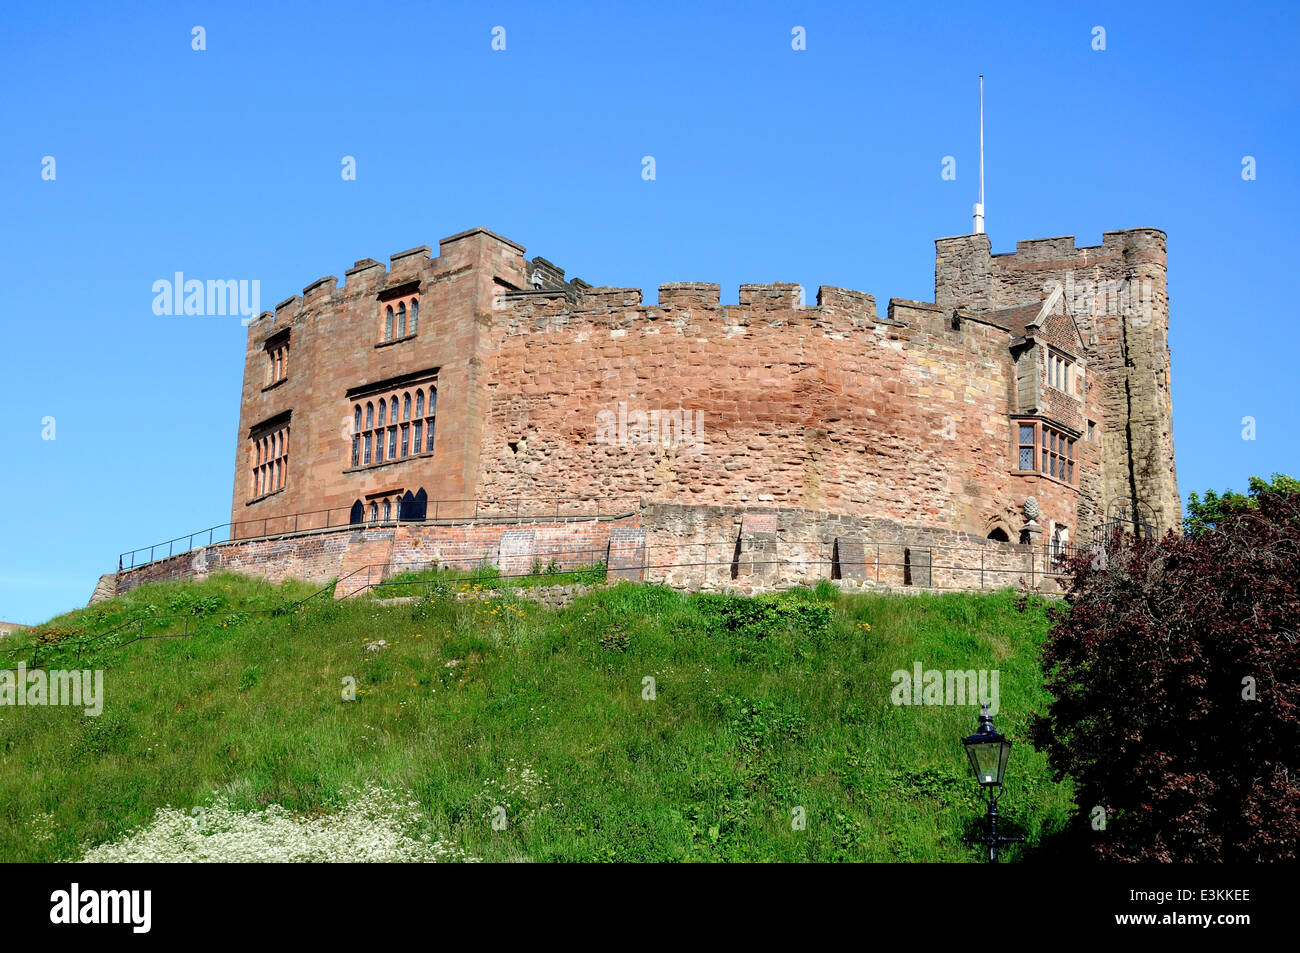 View of the Norman castle, Tamworth, Staffordshire, England, UK, Western Europe. - Stock Image